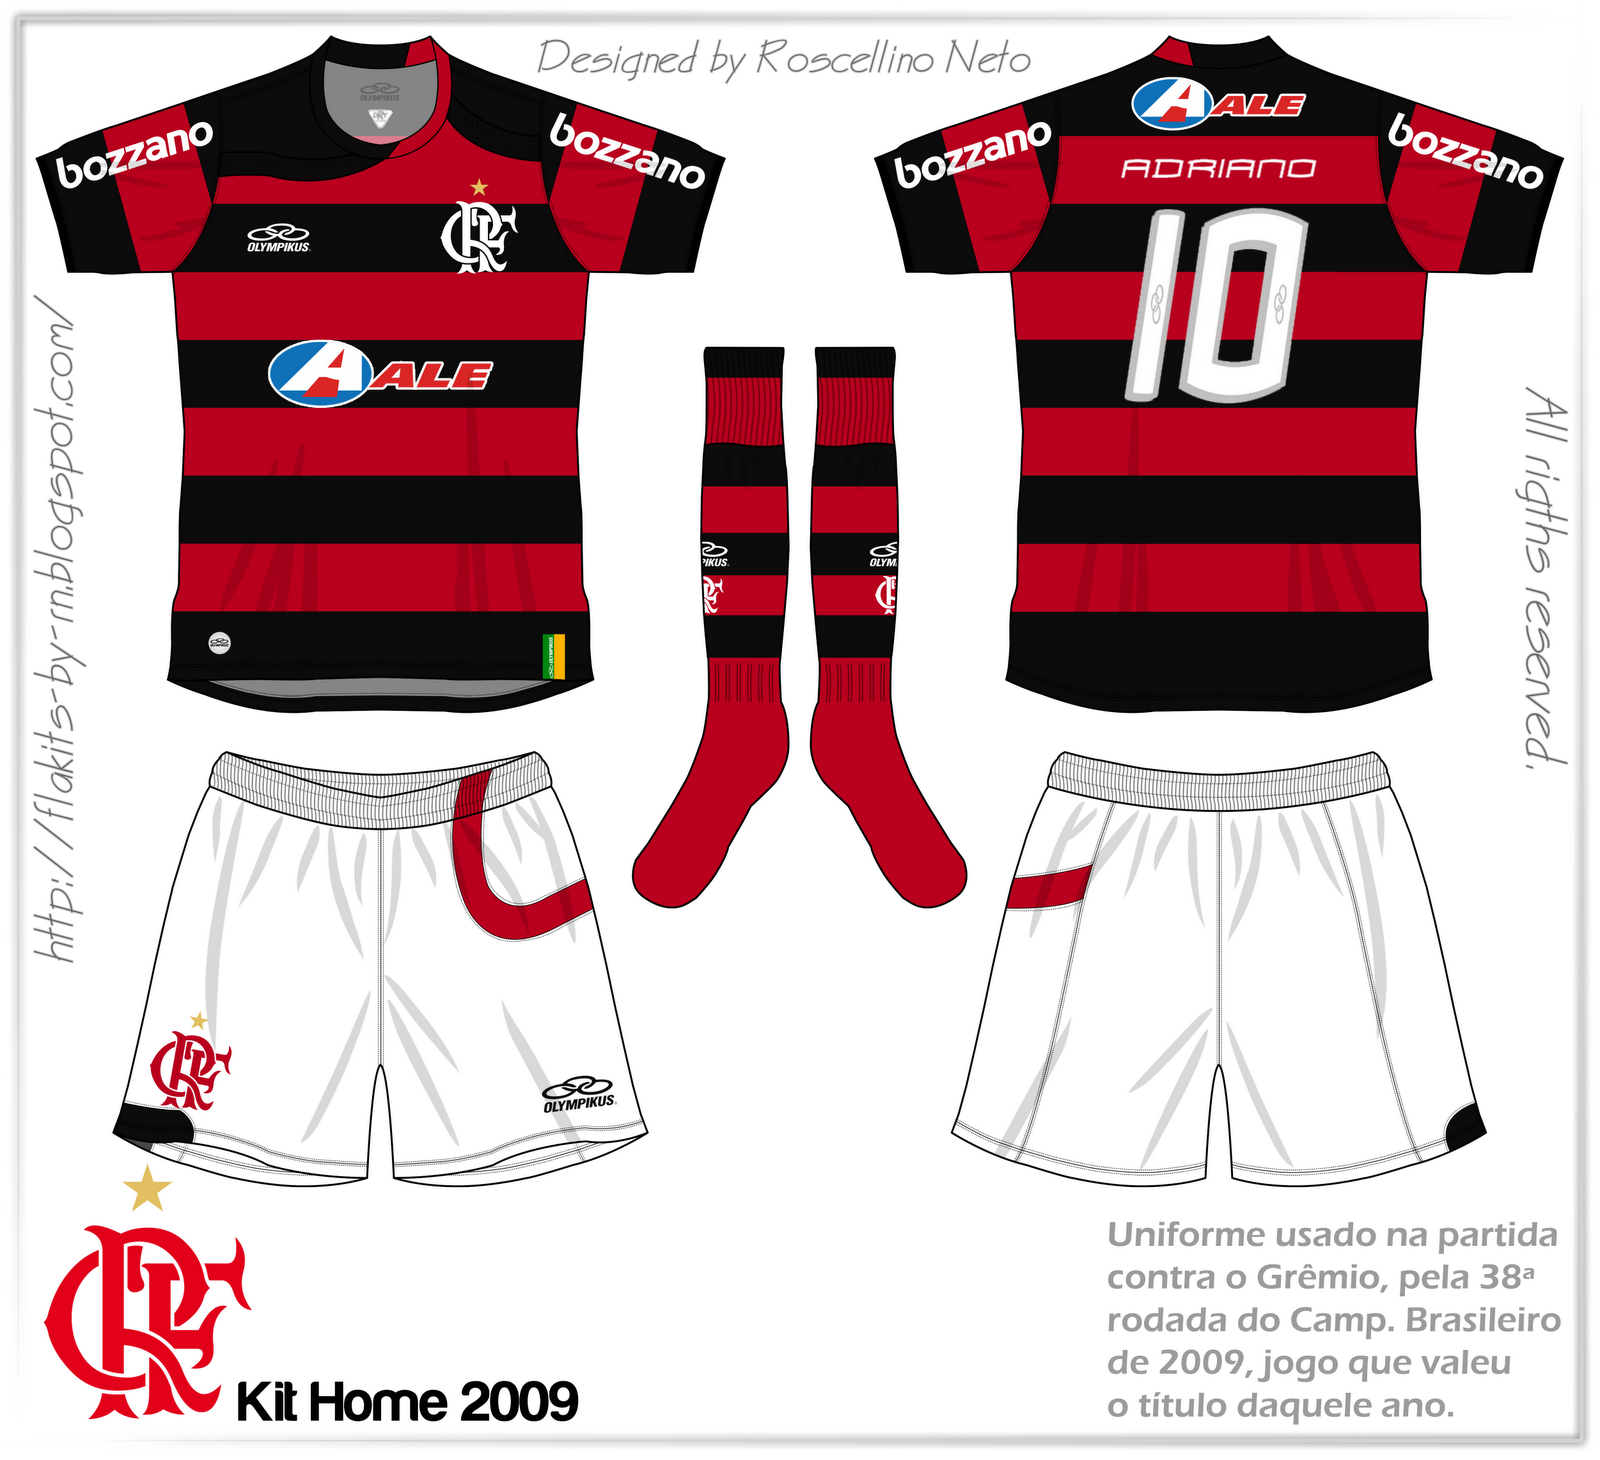 Kits click for details download image 512x512 soccer flamengo kits pc